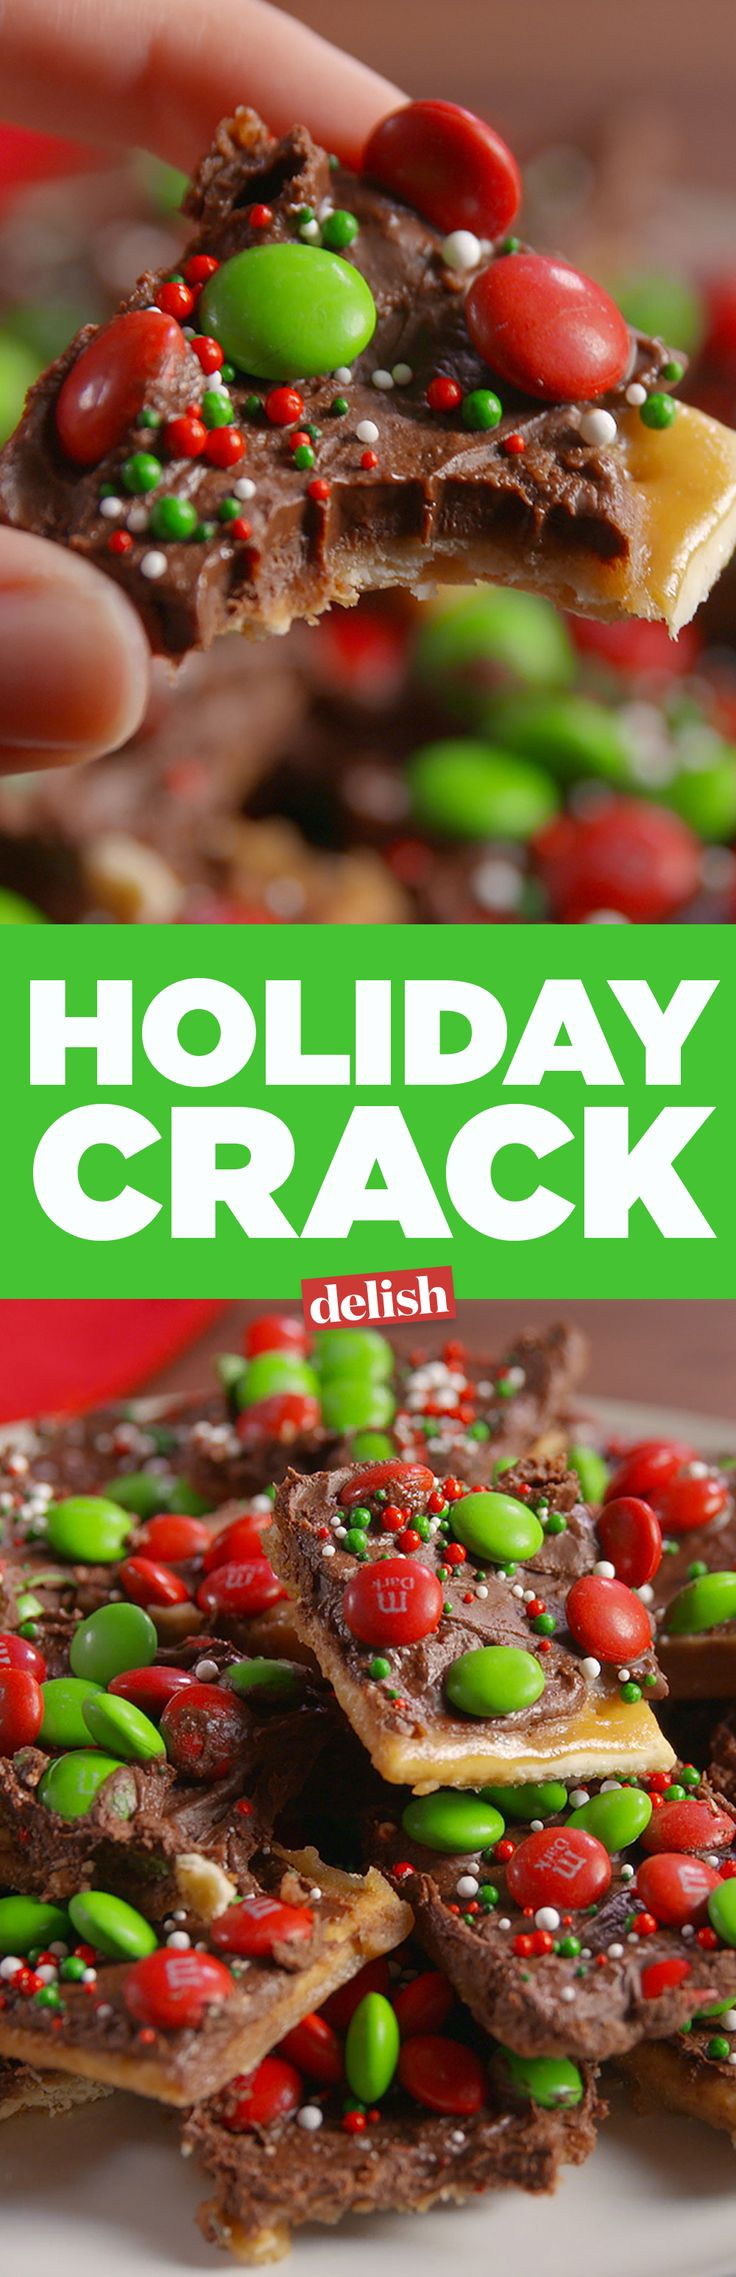 Warning: Holiday Crack will cause arguments over the last piece. Get the recipe from Delish.com.